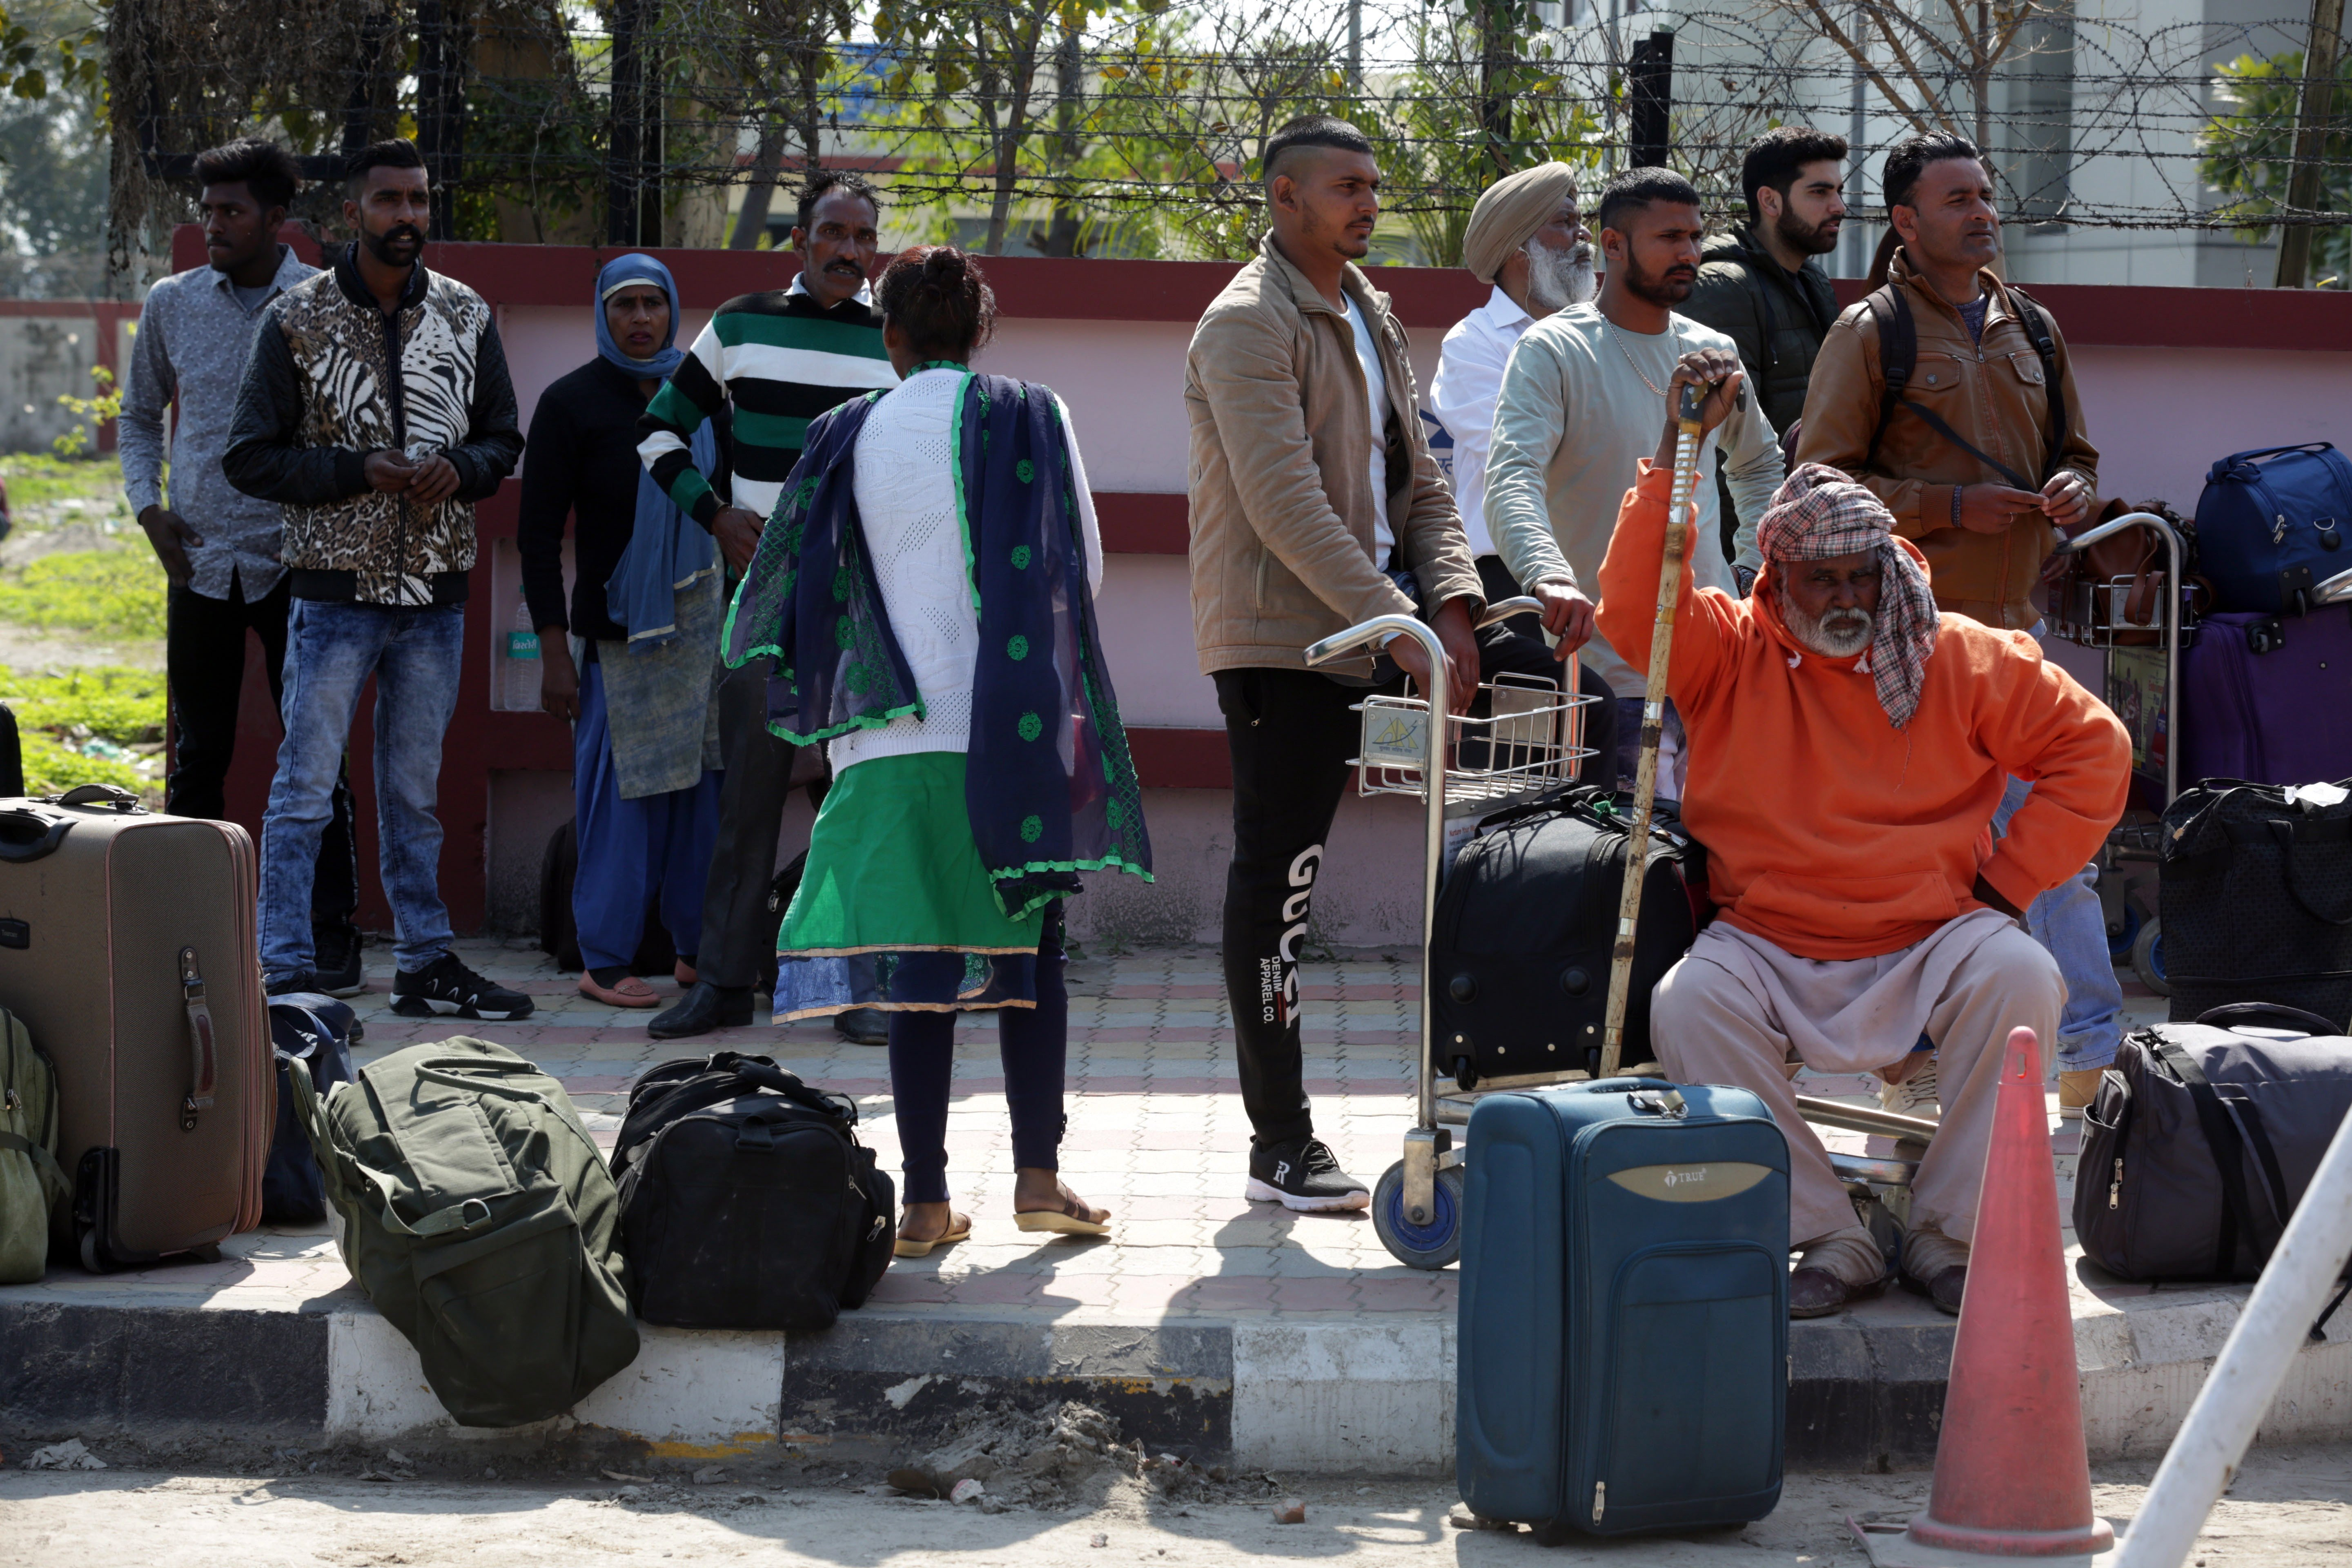 Kashmir locals say its 'time to settle India-Pakistan conflict for